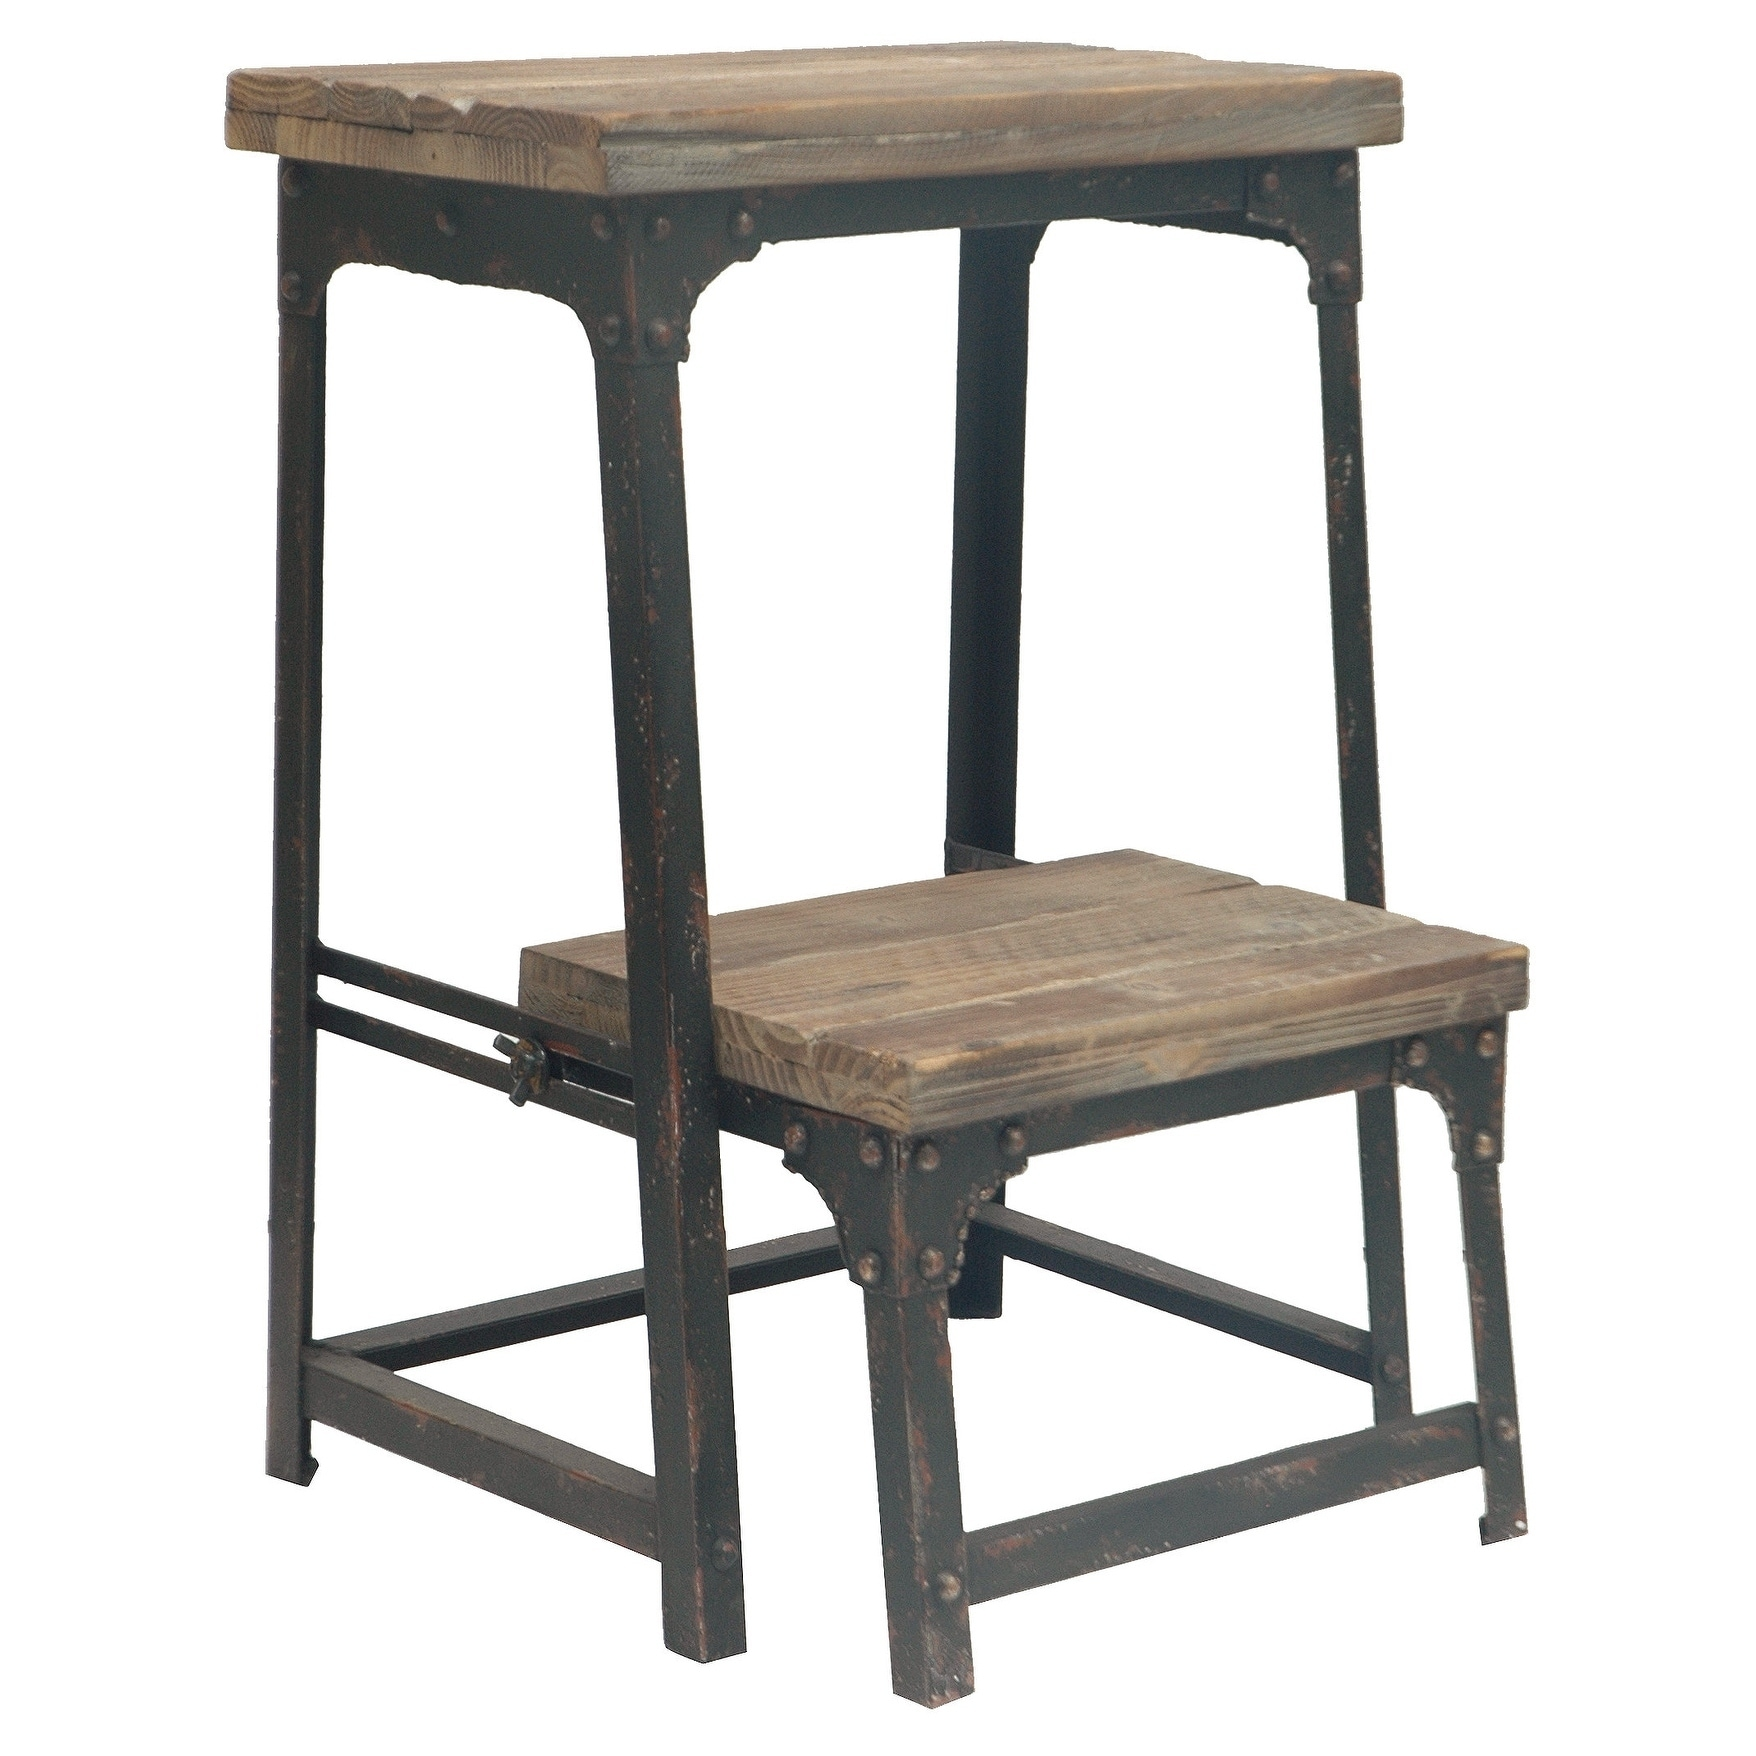 Prime Industrial Grey Metal And Wood Step Stool Andrewgaddart Wooden Chair Designs For Living Room Andrewgaddartcom